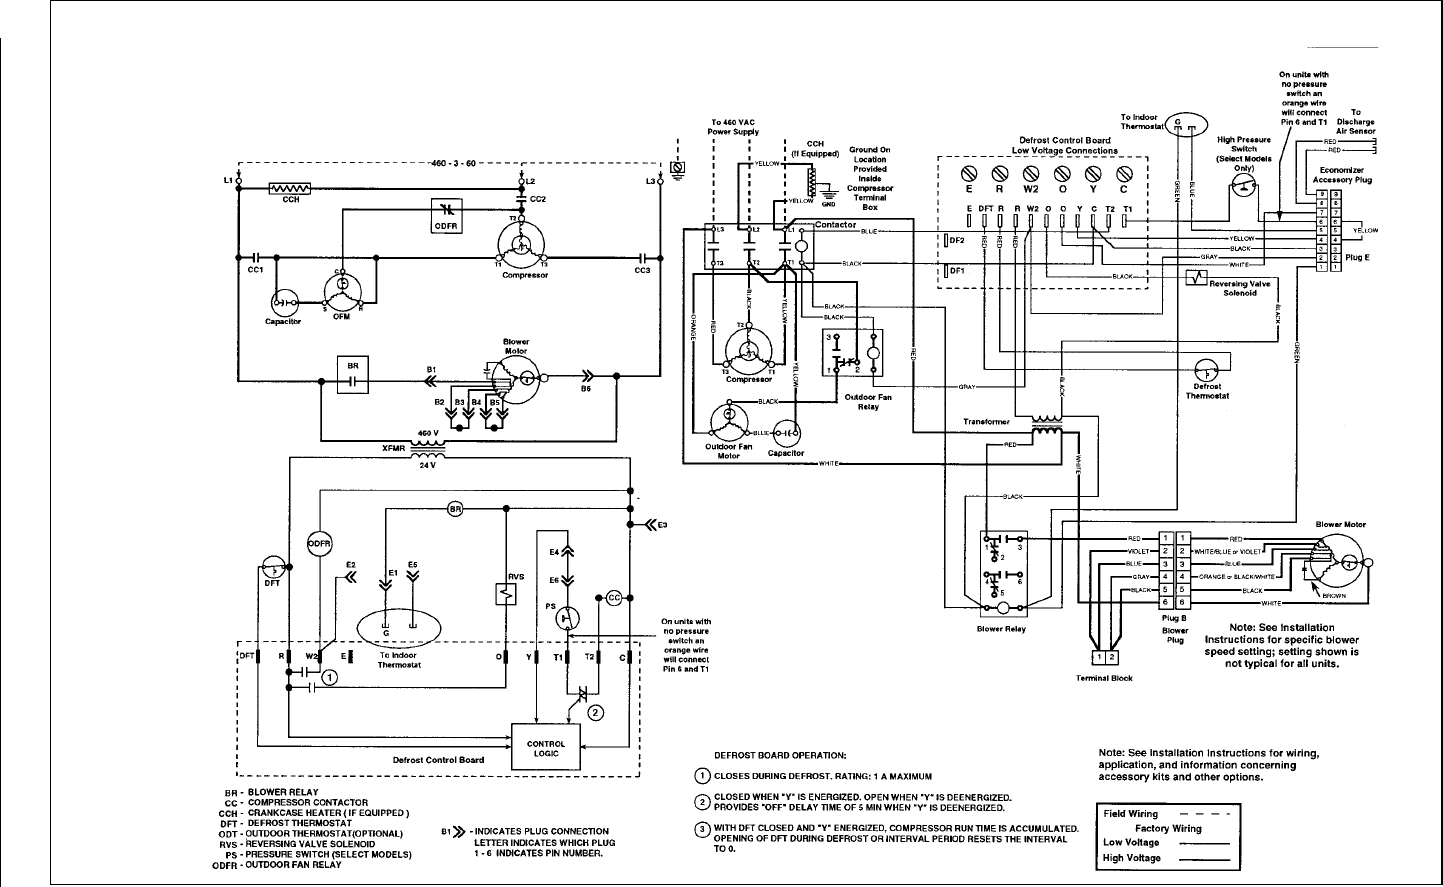 Hydraulic Drive System Diagram in addition Water Source Heat Pump also T22153854 2005 kia spectra wont blow any air or also Wiring Diagram For A John Deere 6400 likewise T17632465 1999 3 8l v6 ac relay location in fuse. on ground source heat pump wiring diagram